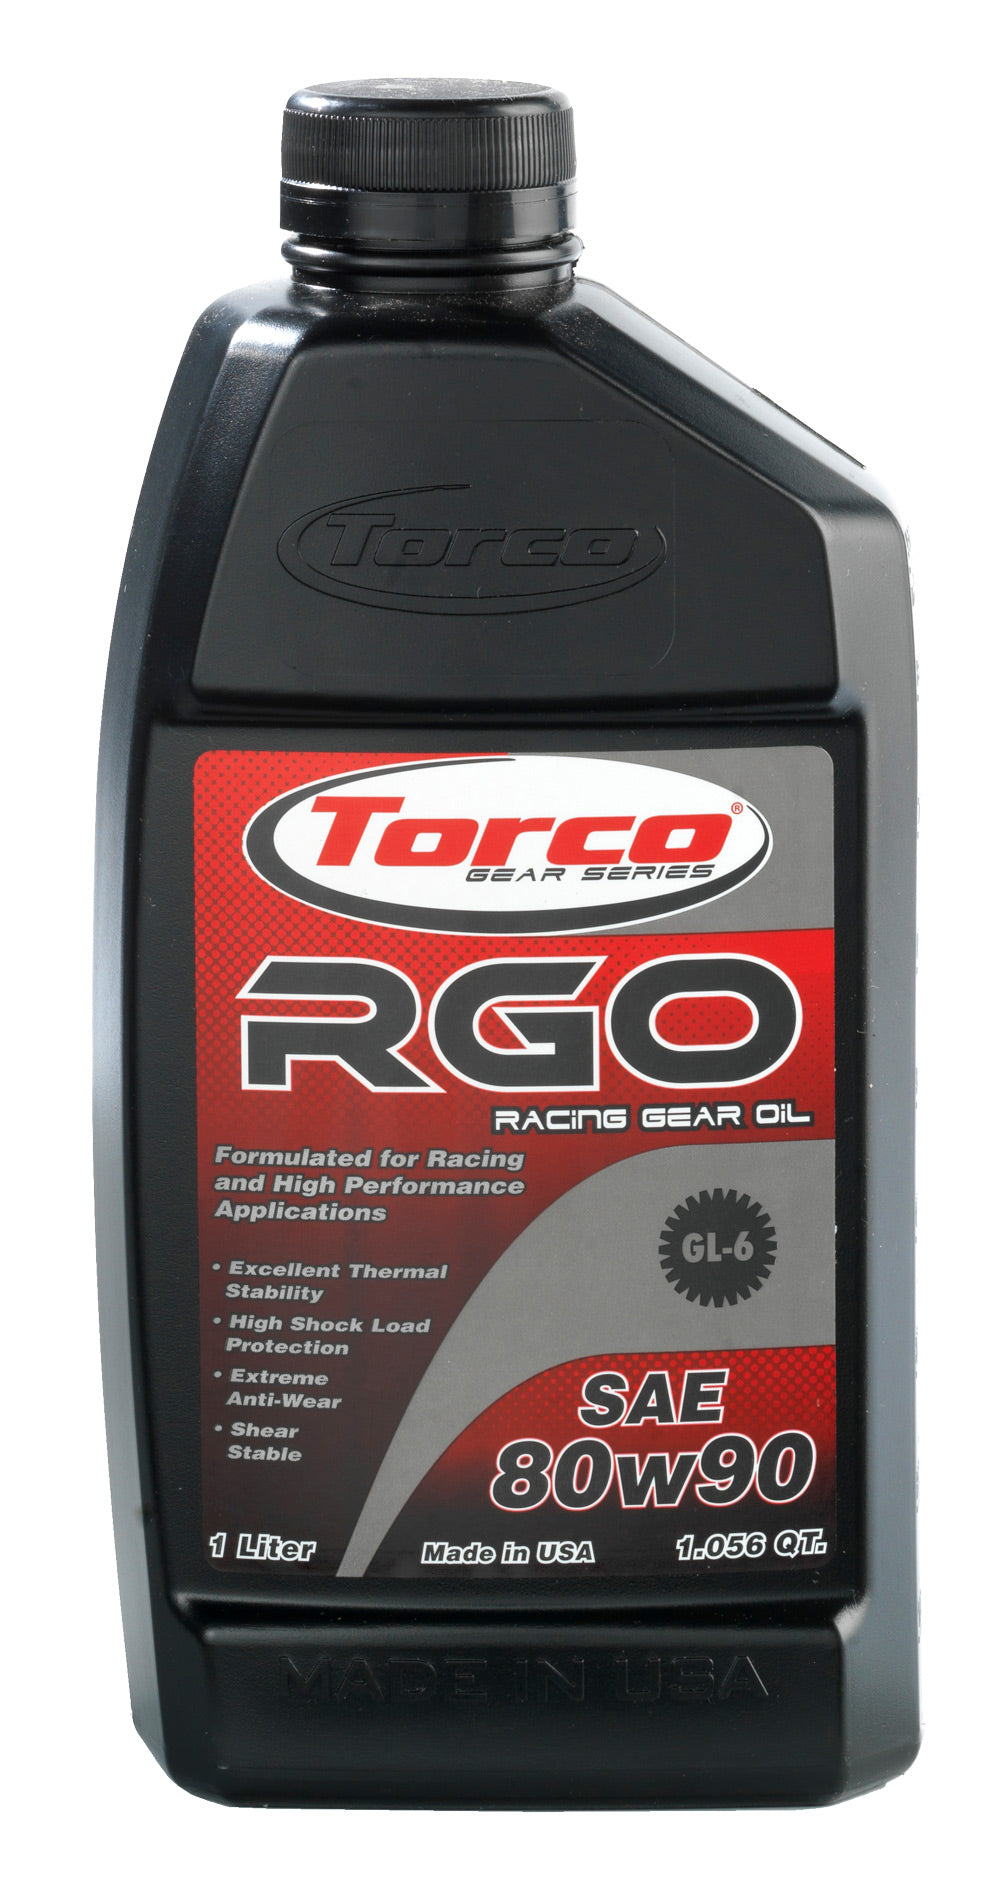 Torco RGO Racing Gear Oil